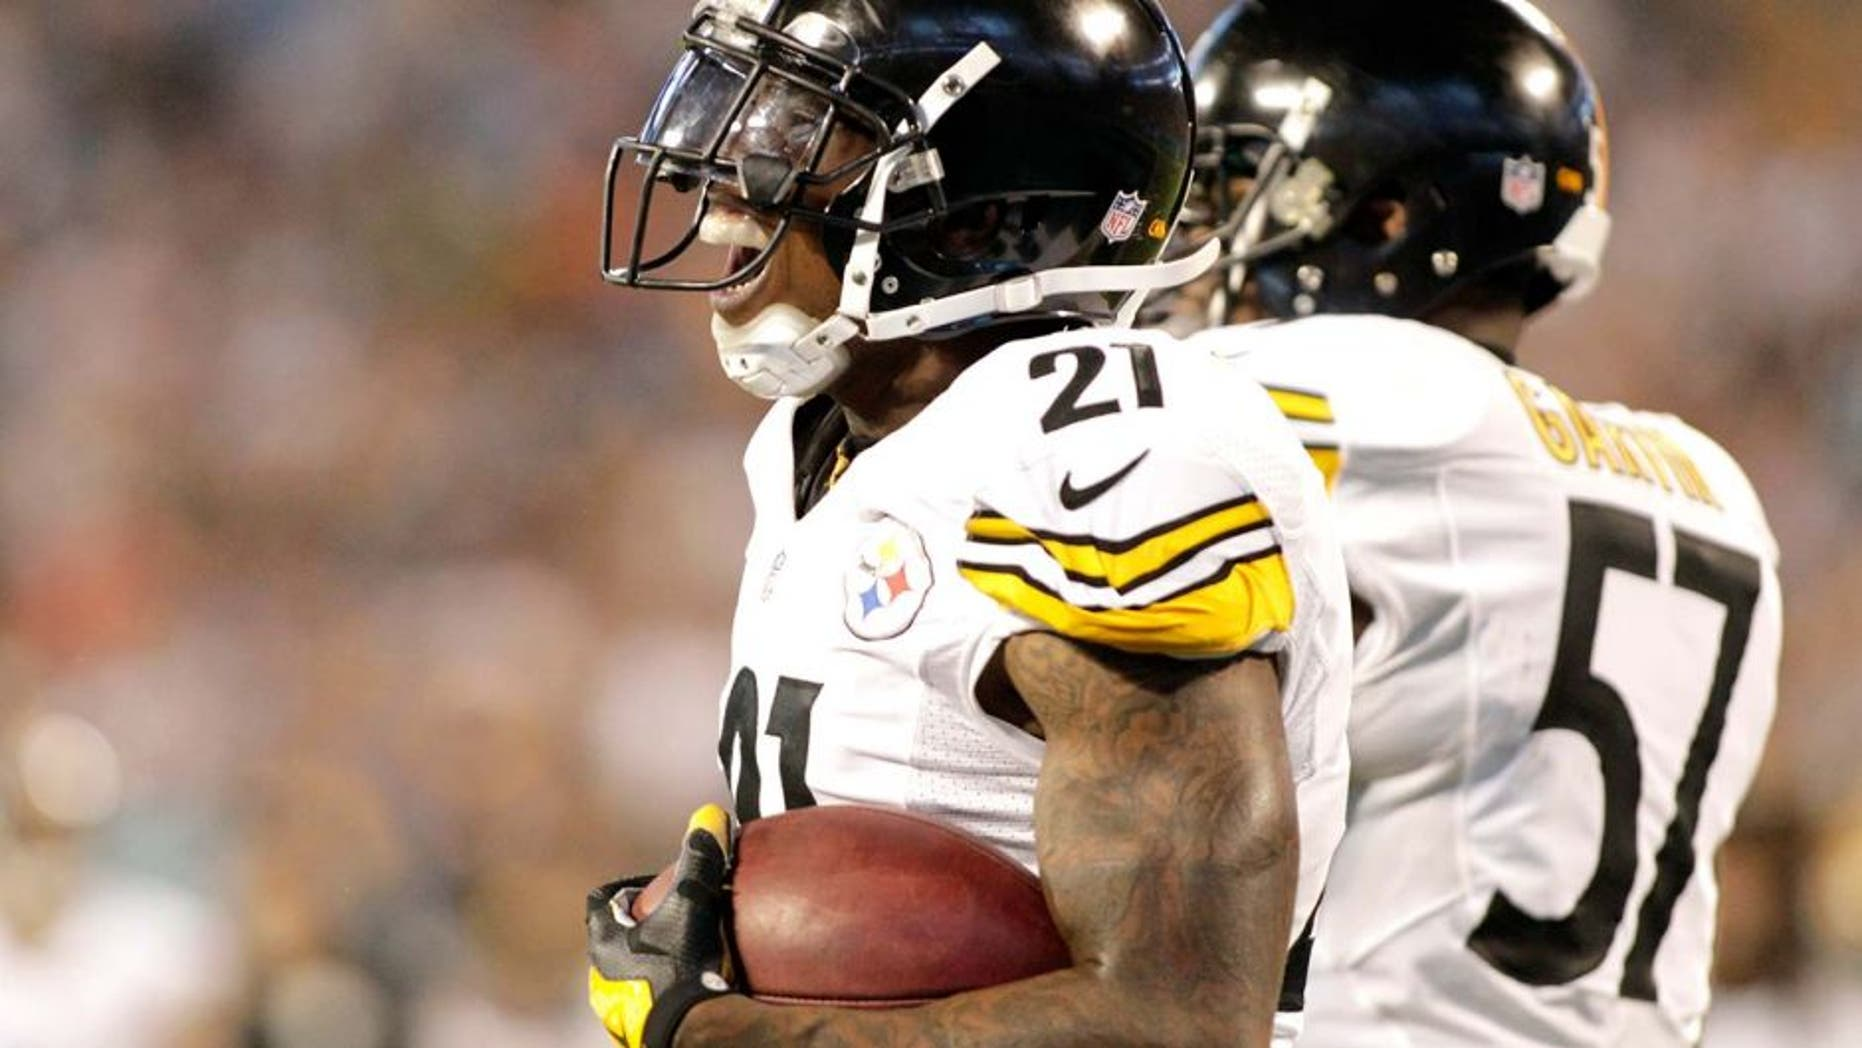 Pittsburgh Steelers' Robert Golden (21) reacts after recovering a muffed punt in the end zone for a touchdown against the Carolina Panthers during the second half of an NFL football game in Charlotte, N.C., Sunday, Sept. 21, 2014. (AP Photo/Bob Leverone)